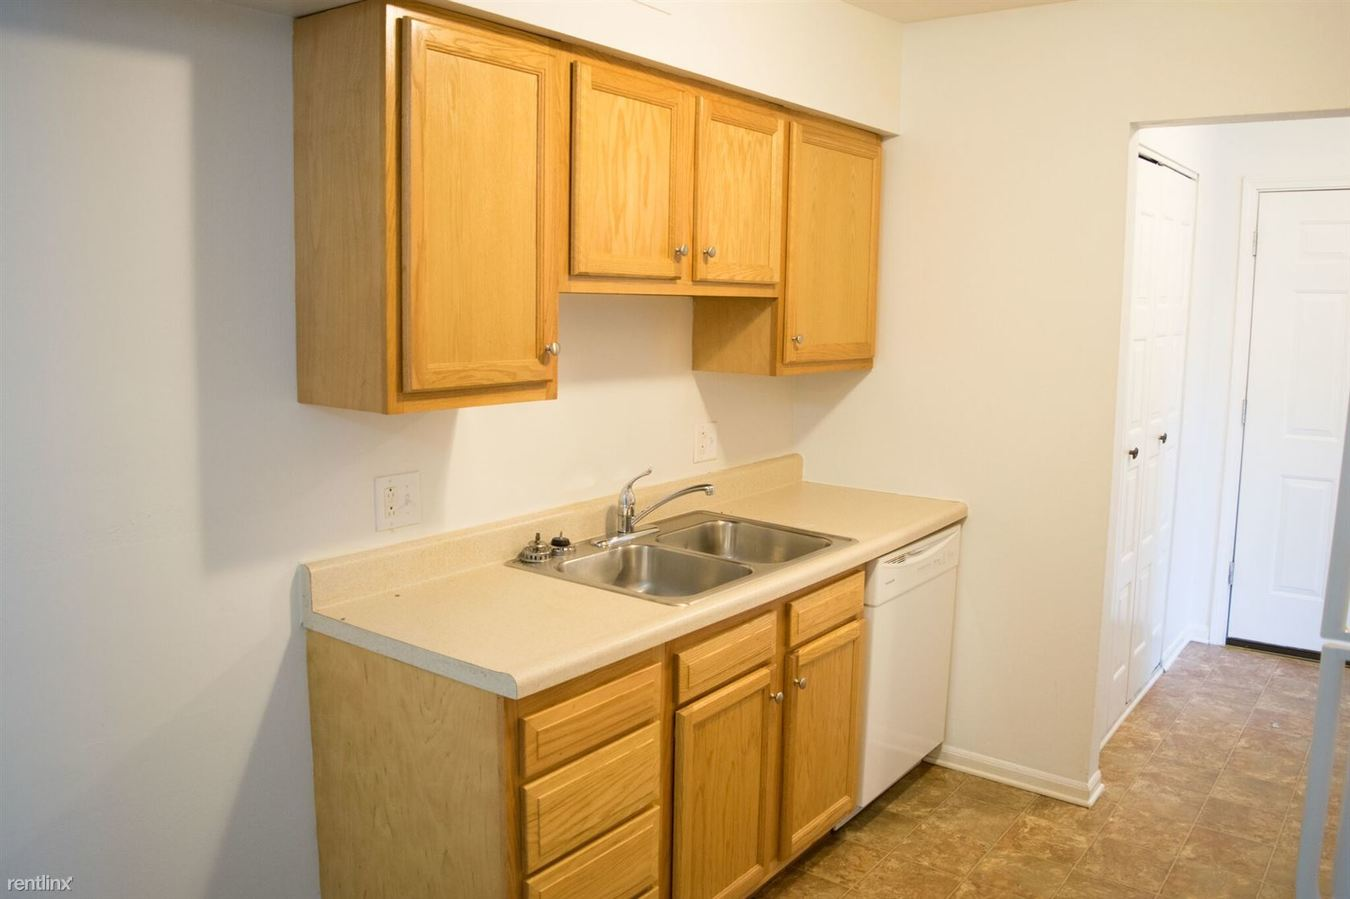 2 Bedrooms 1 Bathroom Apartment for rent at Five Points Courtyard Apartments in Toledo, OH